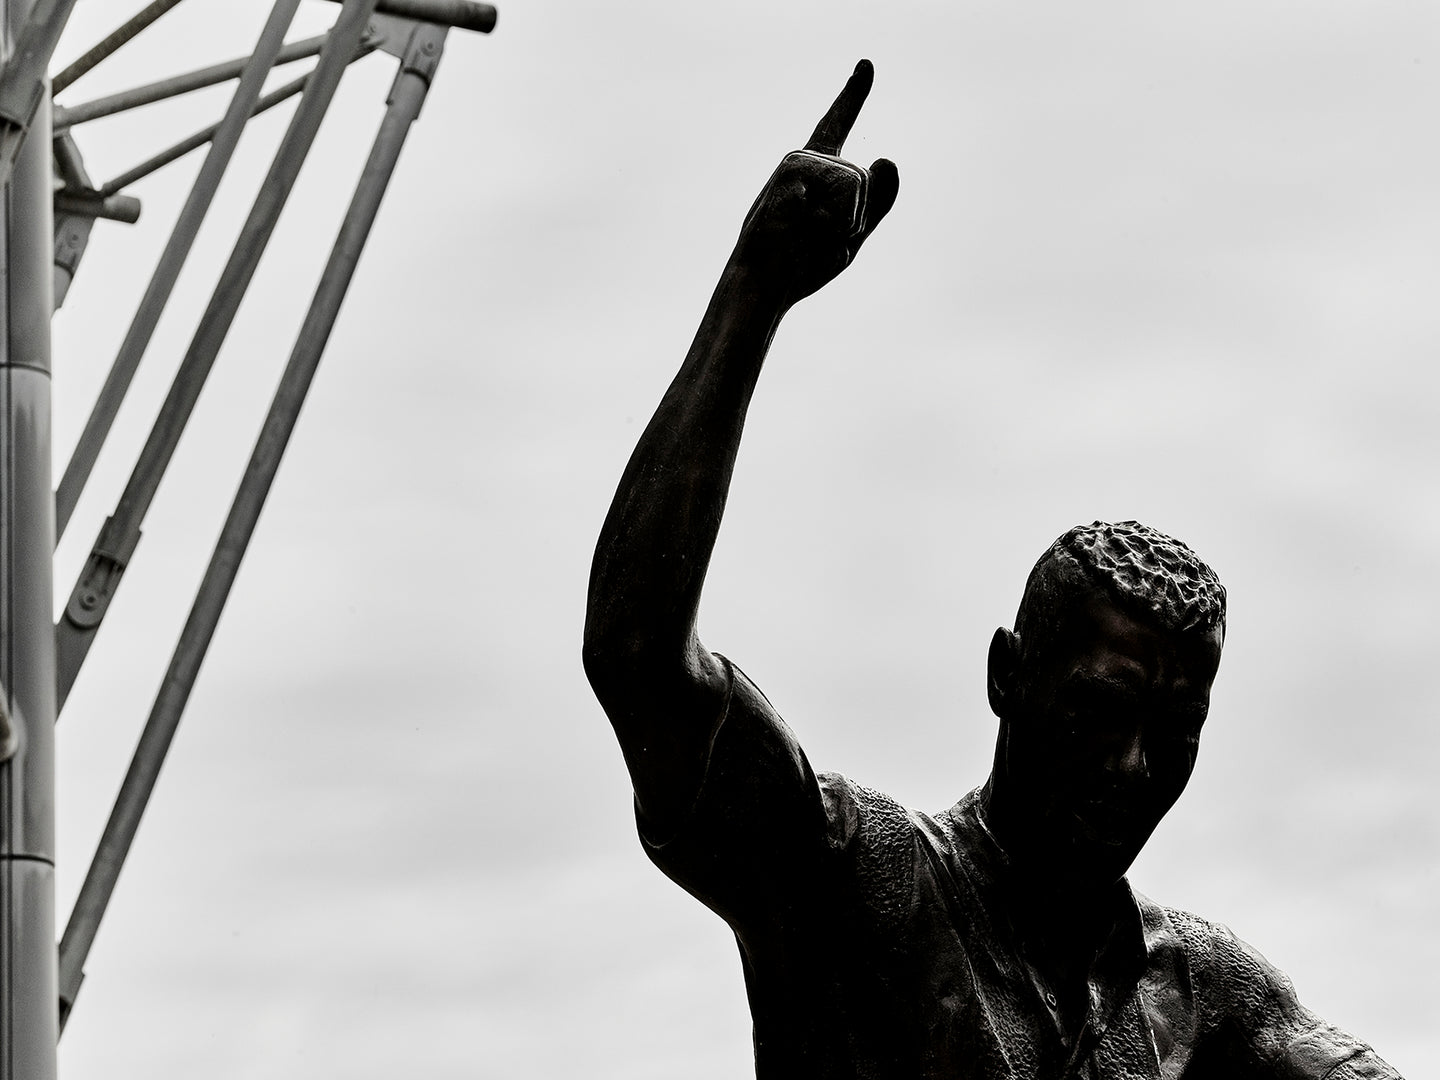 Alan Shearer Statue, St James Park